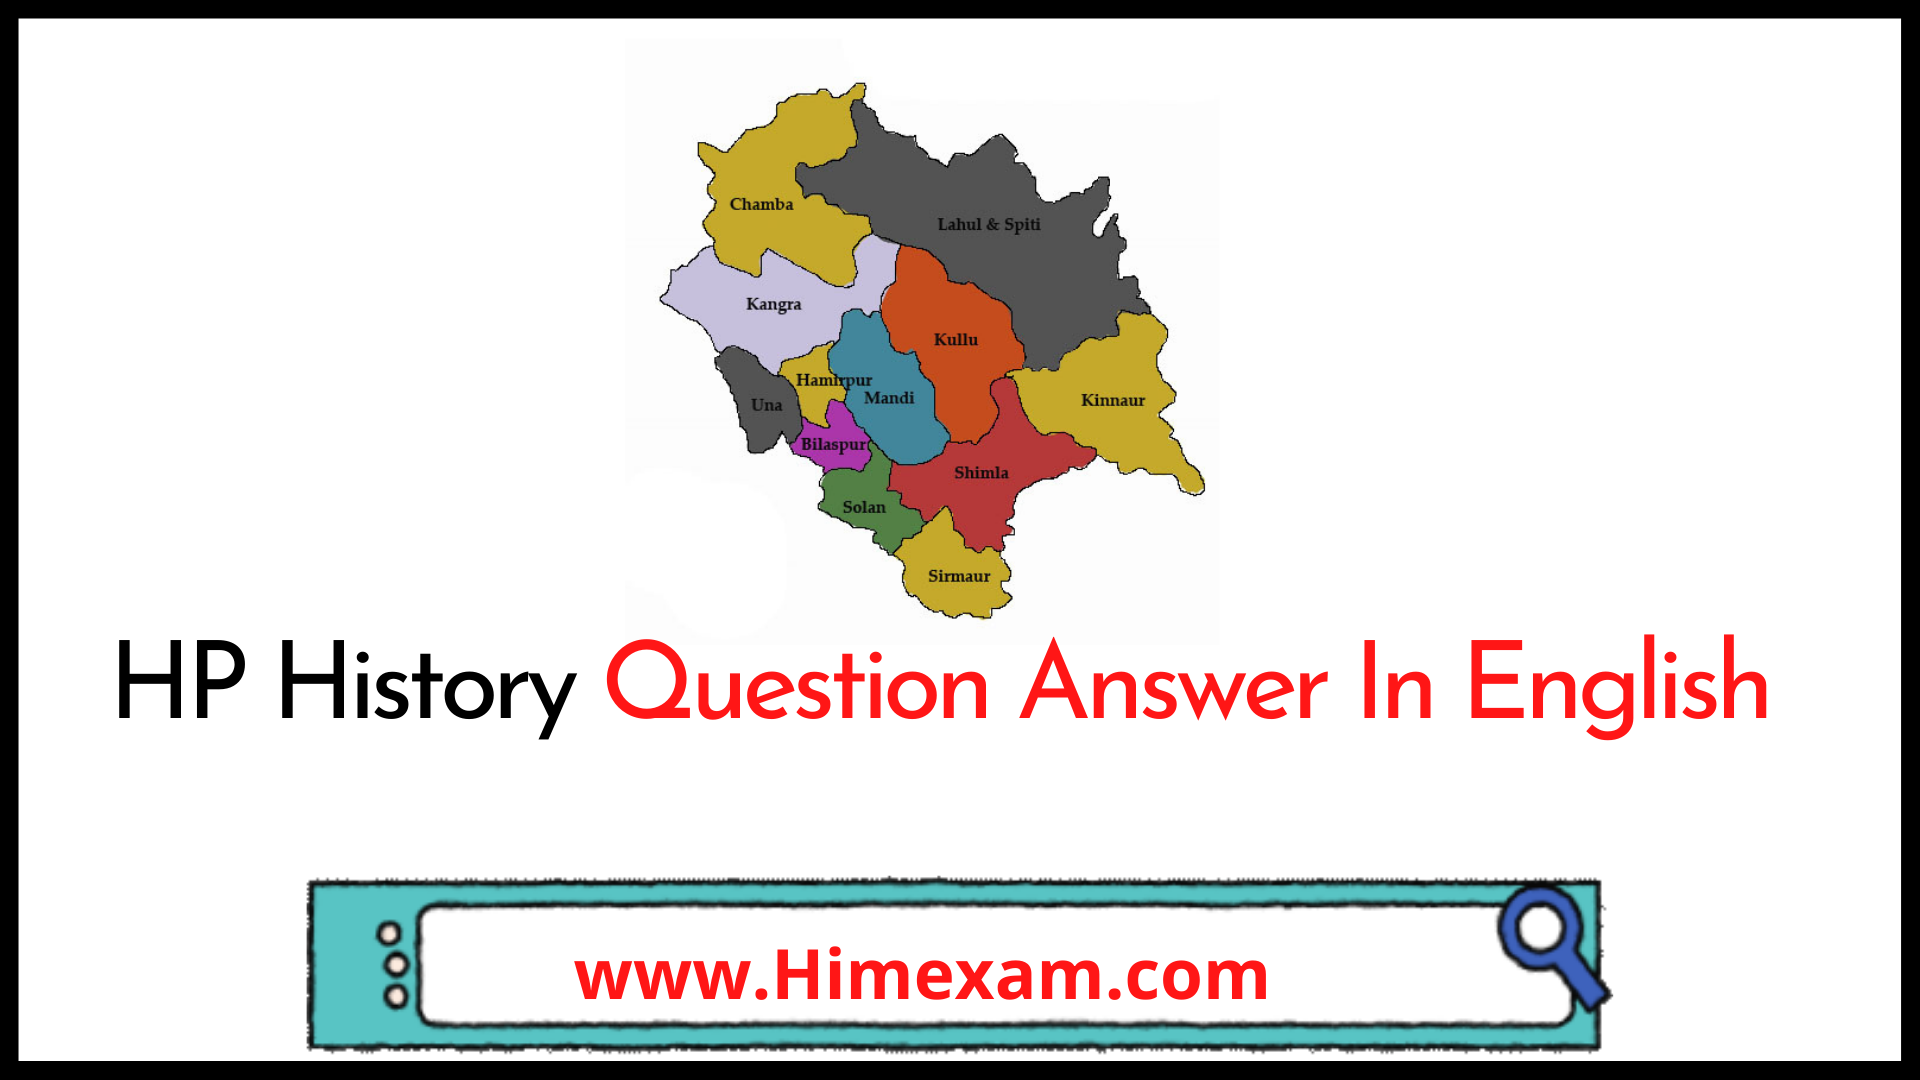 HP History Question Answer In English